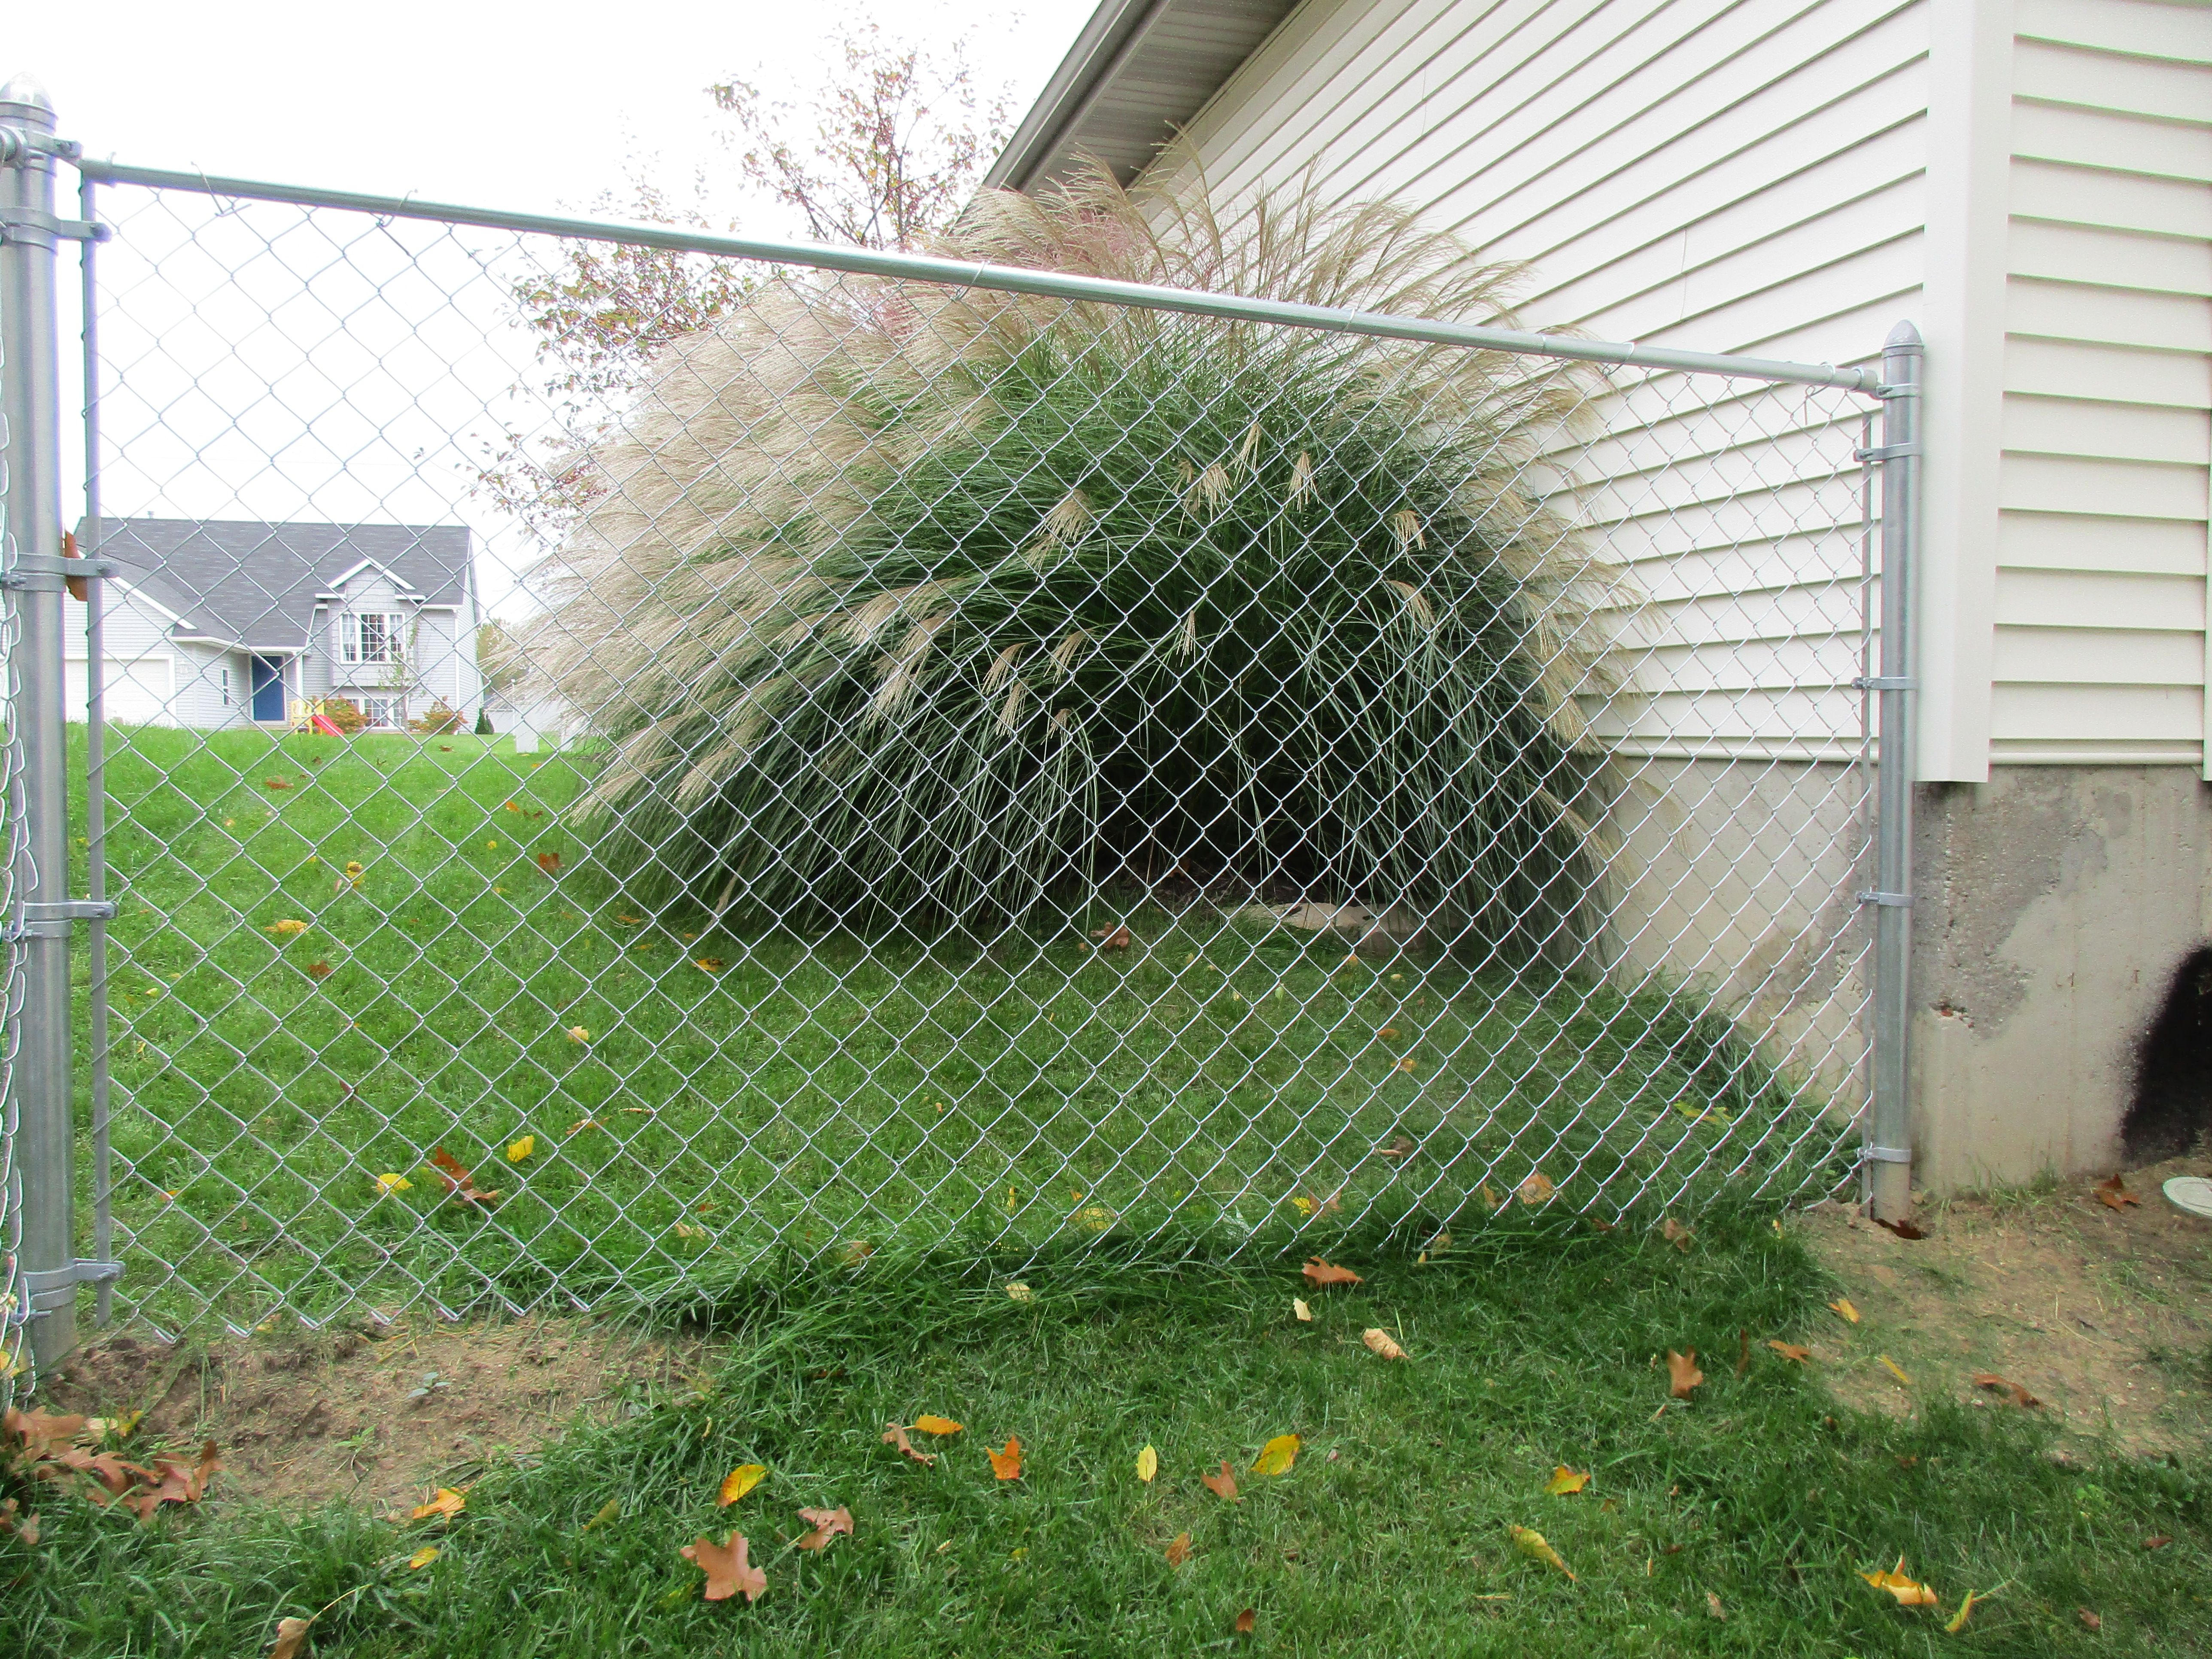 5 High Galvanized Chain Link Fence Chain Link Fence Fence Plants